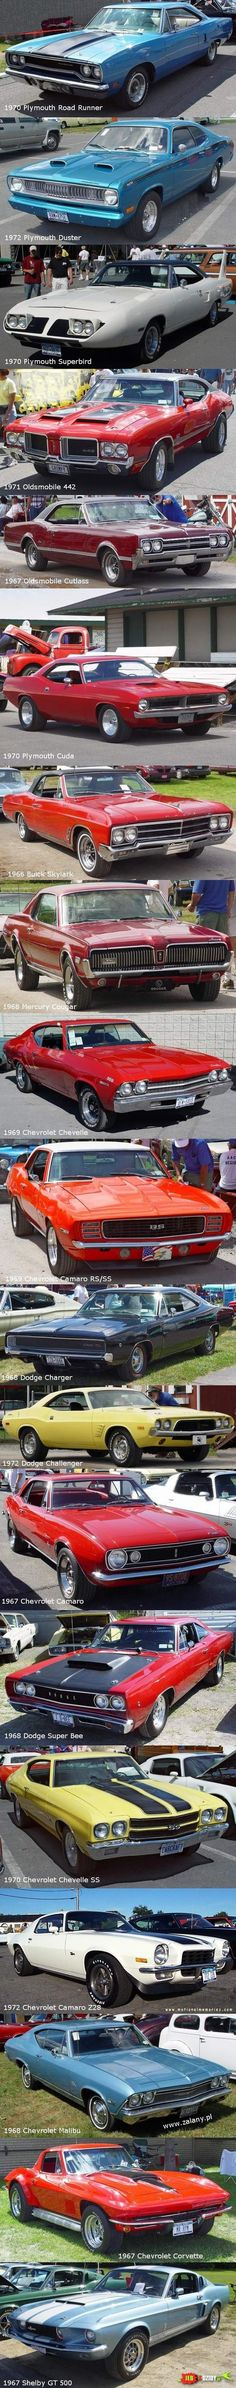 824 Best CLASSIC CARS, ETC  images in 2019 | Rolling carts